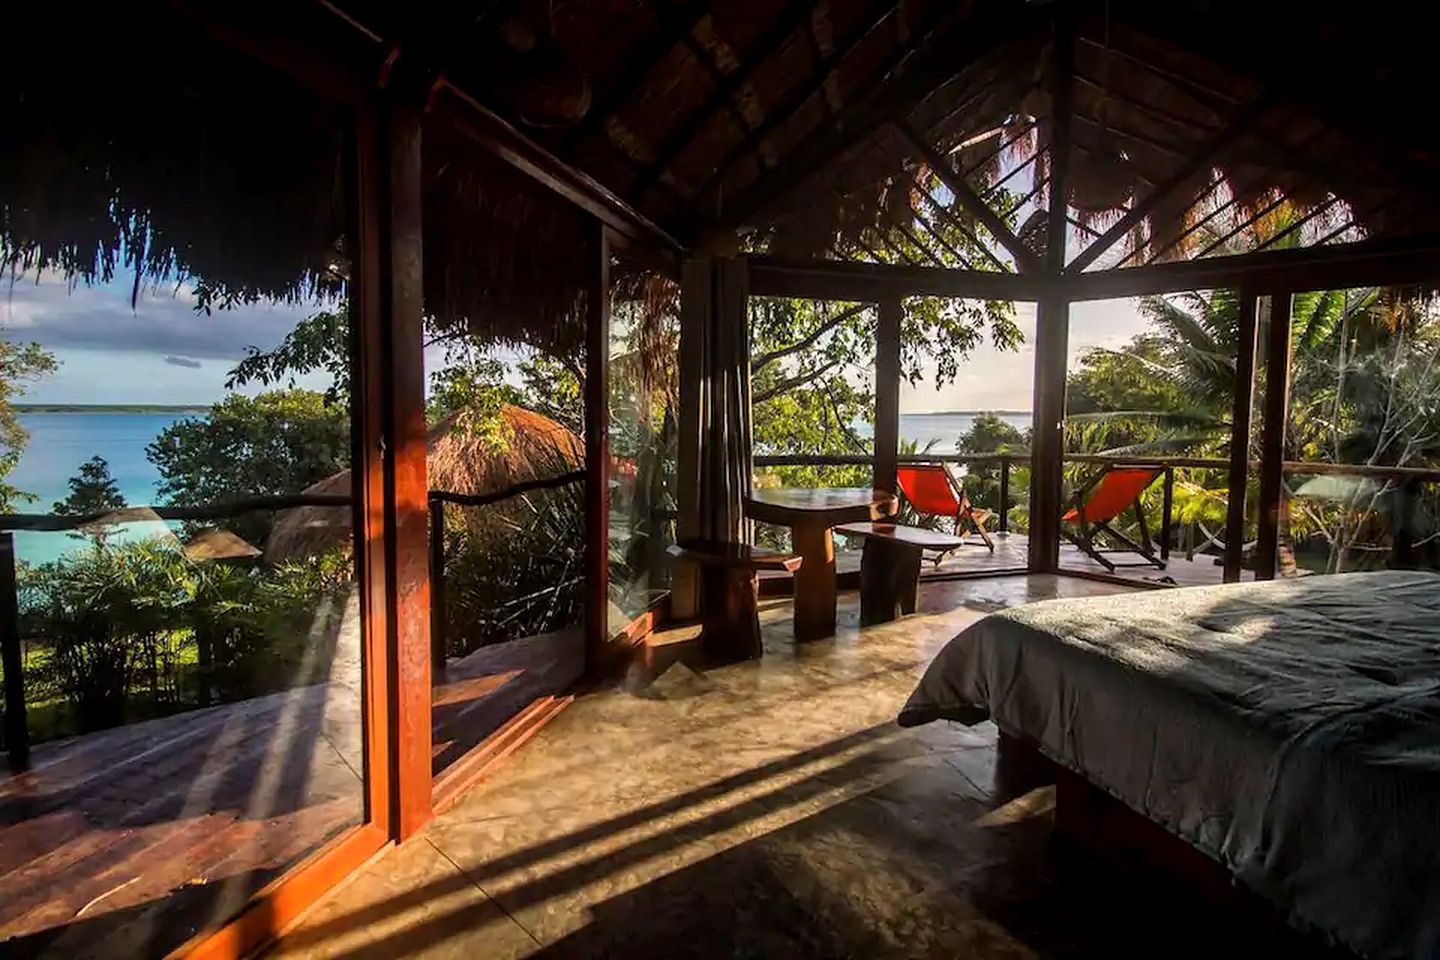 This Bacalar accommodation is perfect for romantic getaways in Mexico